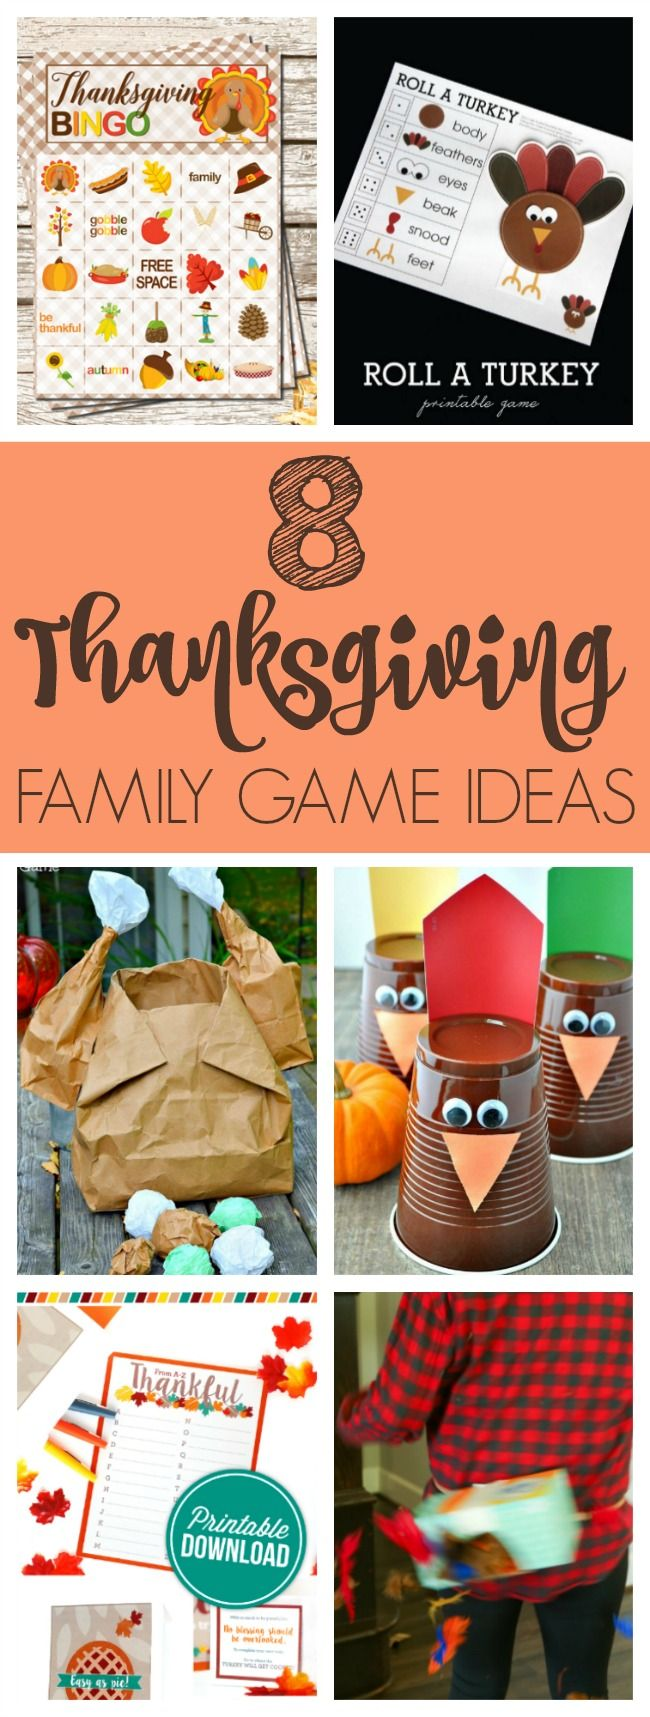 Thanksgiving Family Game Ideas via Pretty My Party